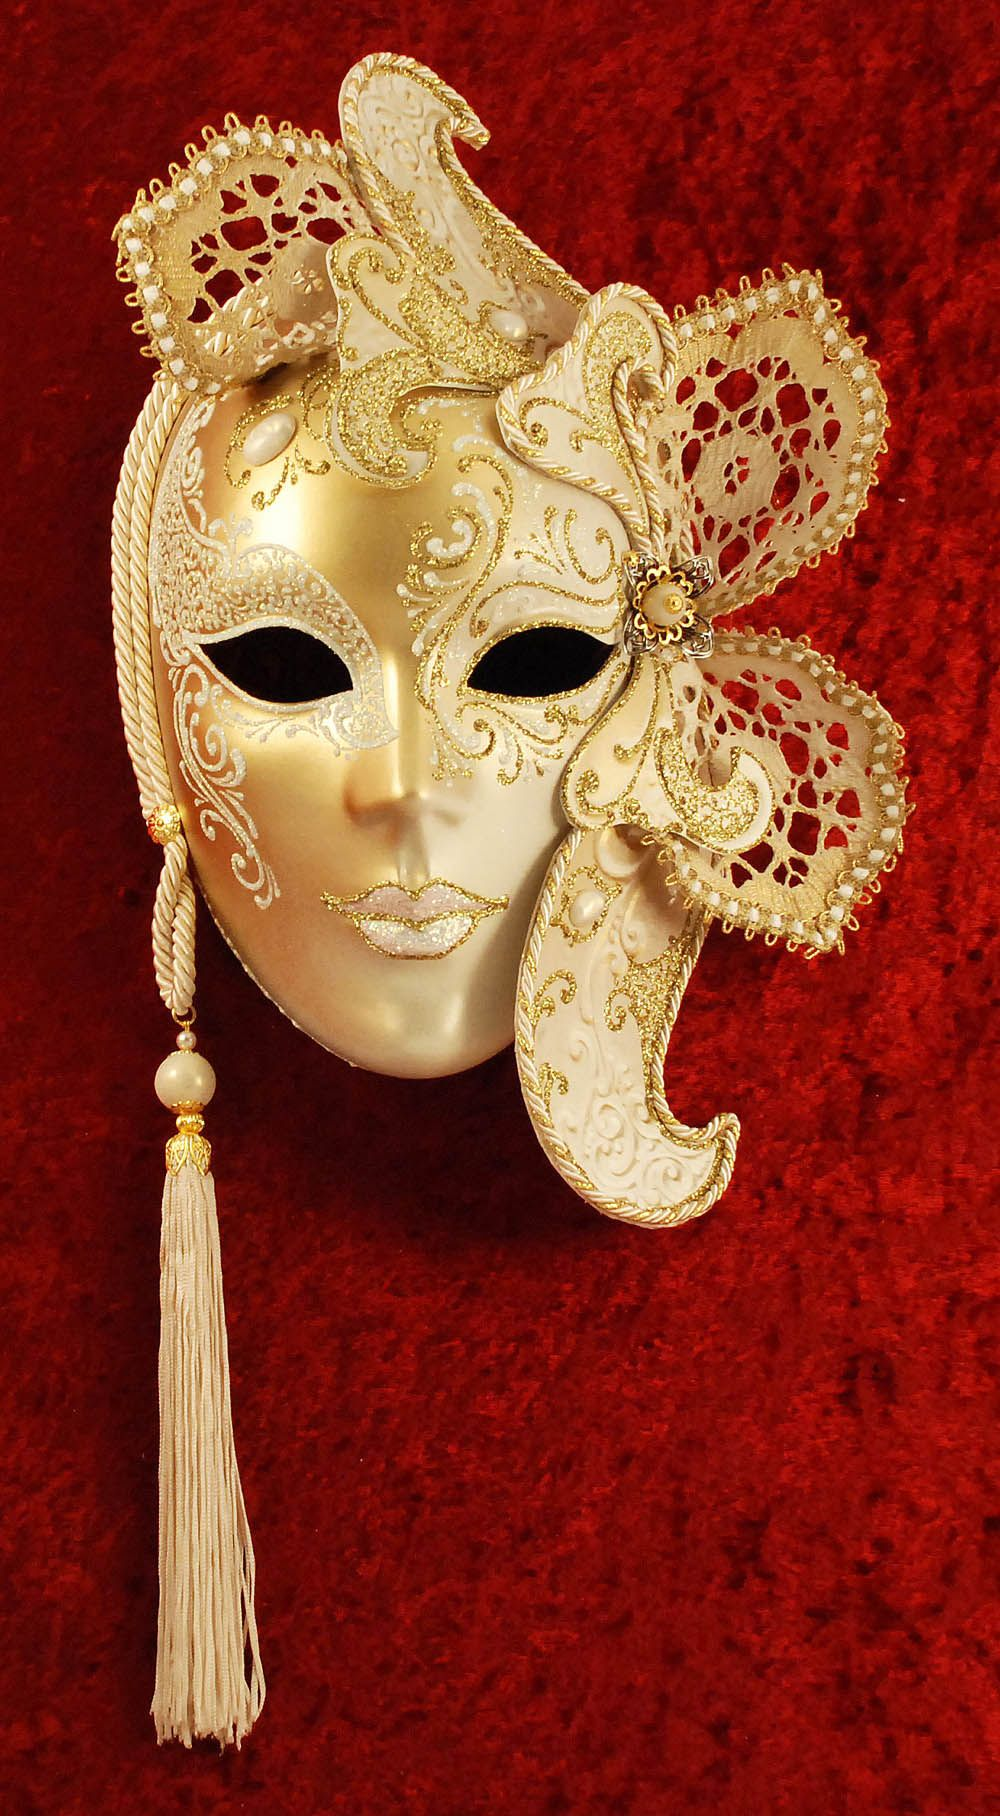 Маски... | No faces allowed | Pinterest | Masking, Masquerades and ...